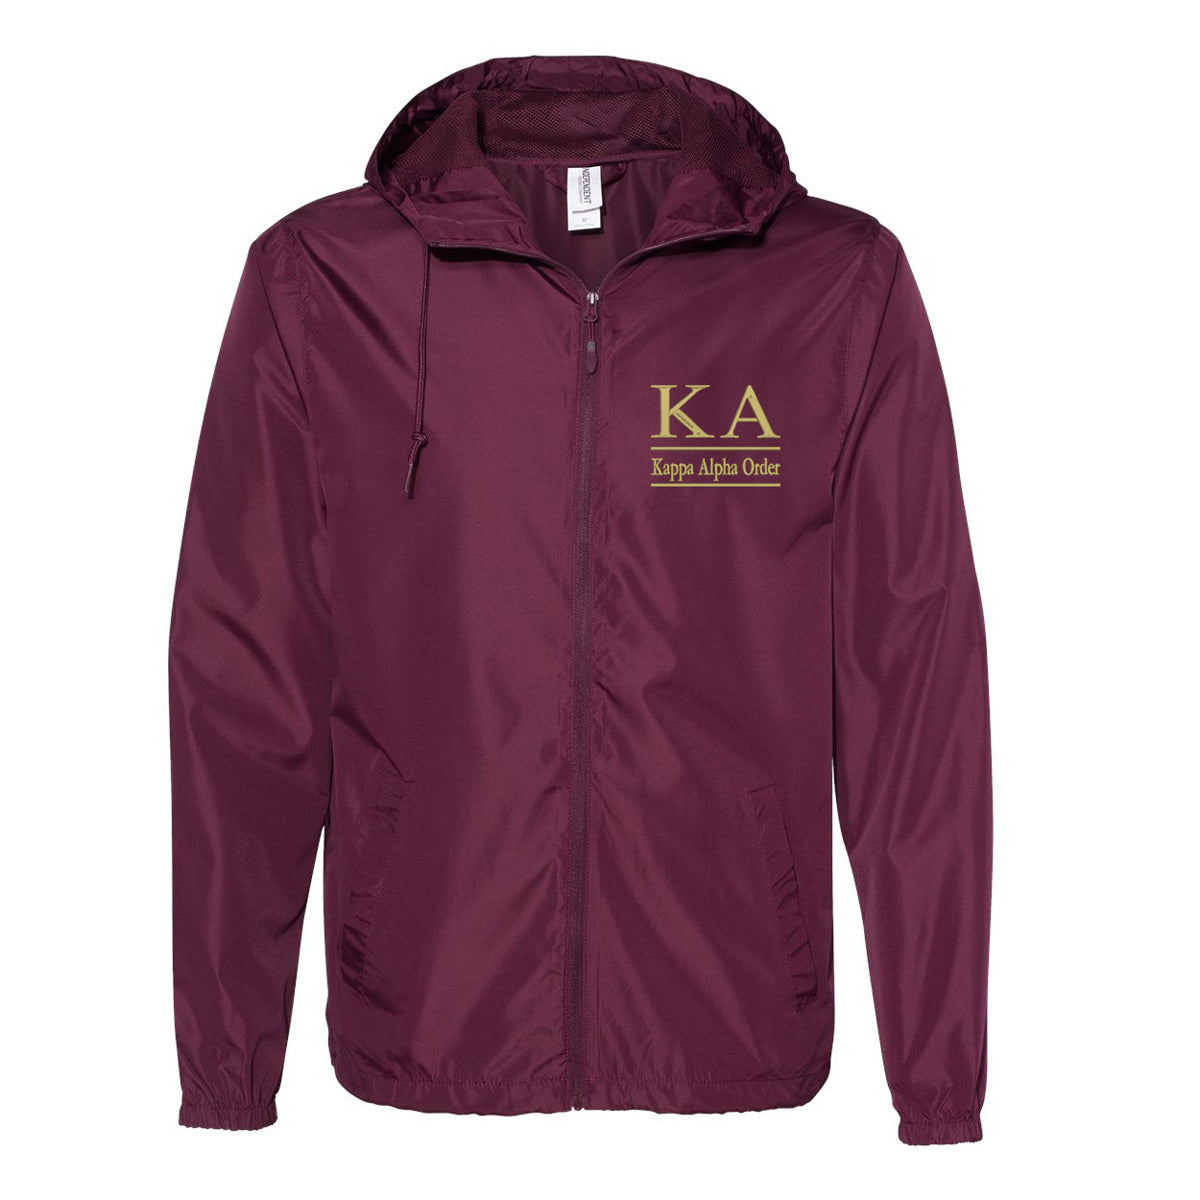 Kappa Alpha Order Full Zip Windbreaker